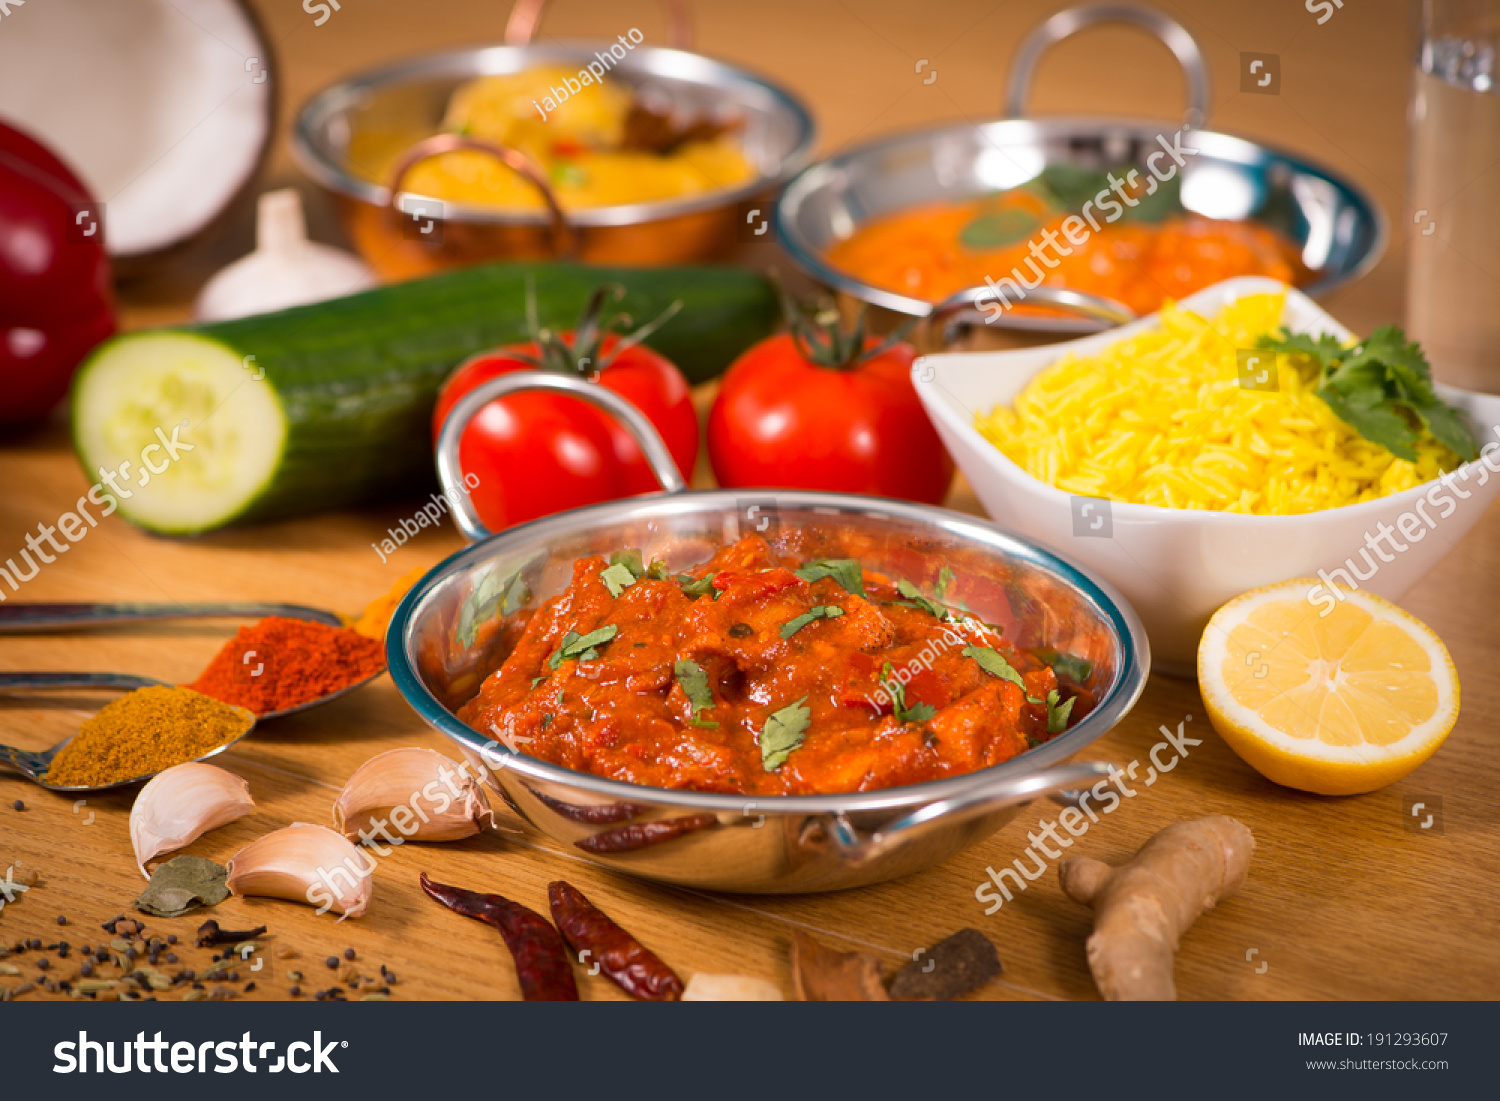 Indian food chicken jalfrezi curry balti stock photo 191293607 indian food chicken jalfrezi curry in balti dish decoration set of vegetables forumfinder Gallery